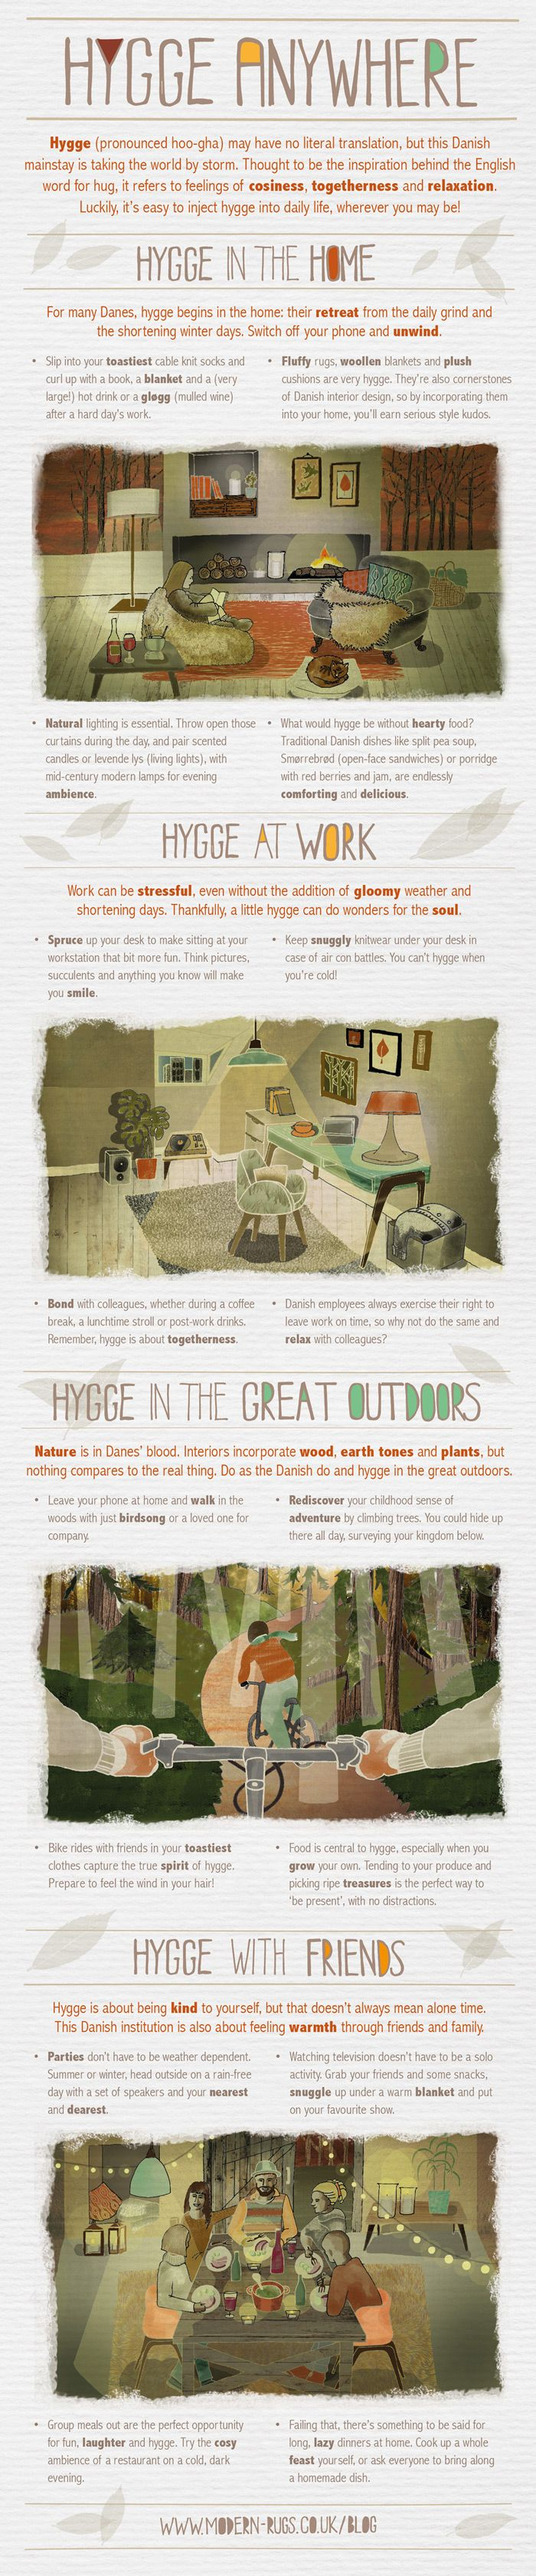 How to Hygge #Infographic